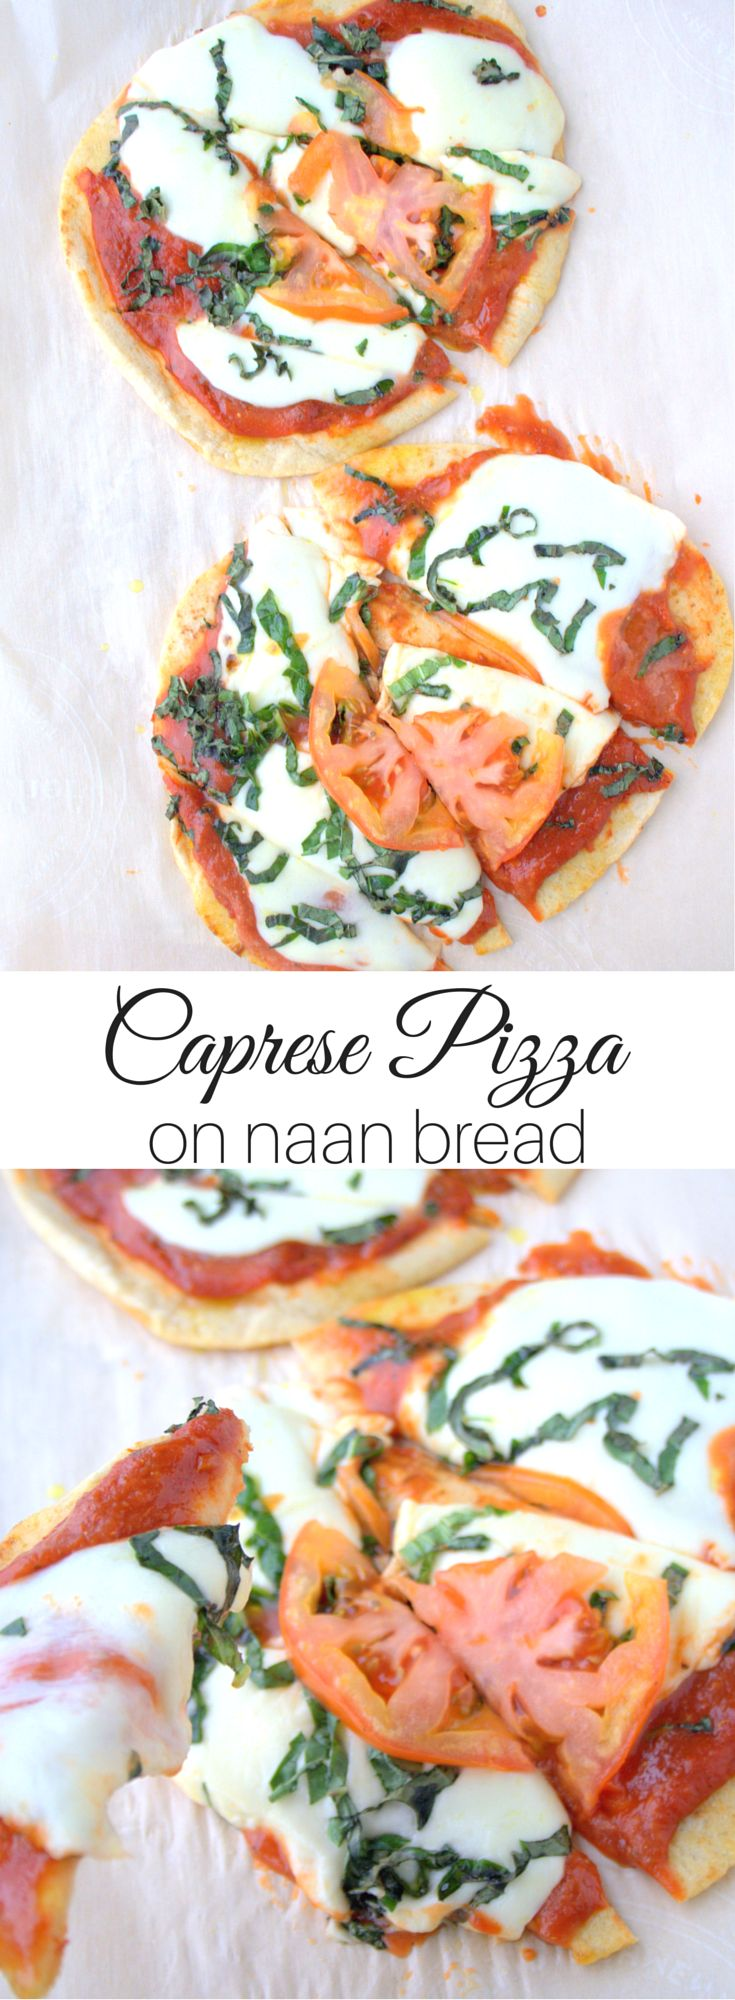 This is the yummiest, easiest pizza I've ever made!   The Refreshanista   Caprese Pizza on Naan Bread   Vegetarian Pizza Recipe   Potluck on OhMyVeggies.com